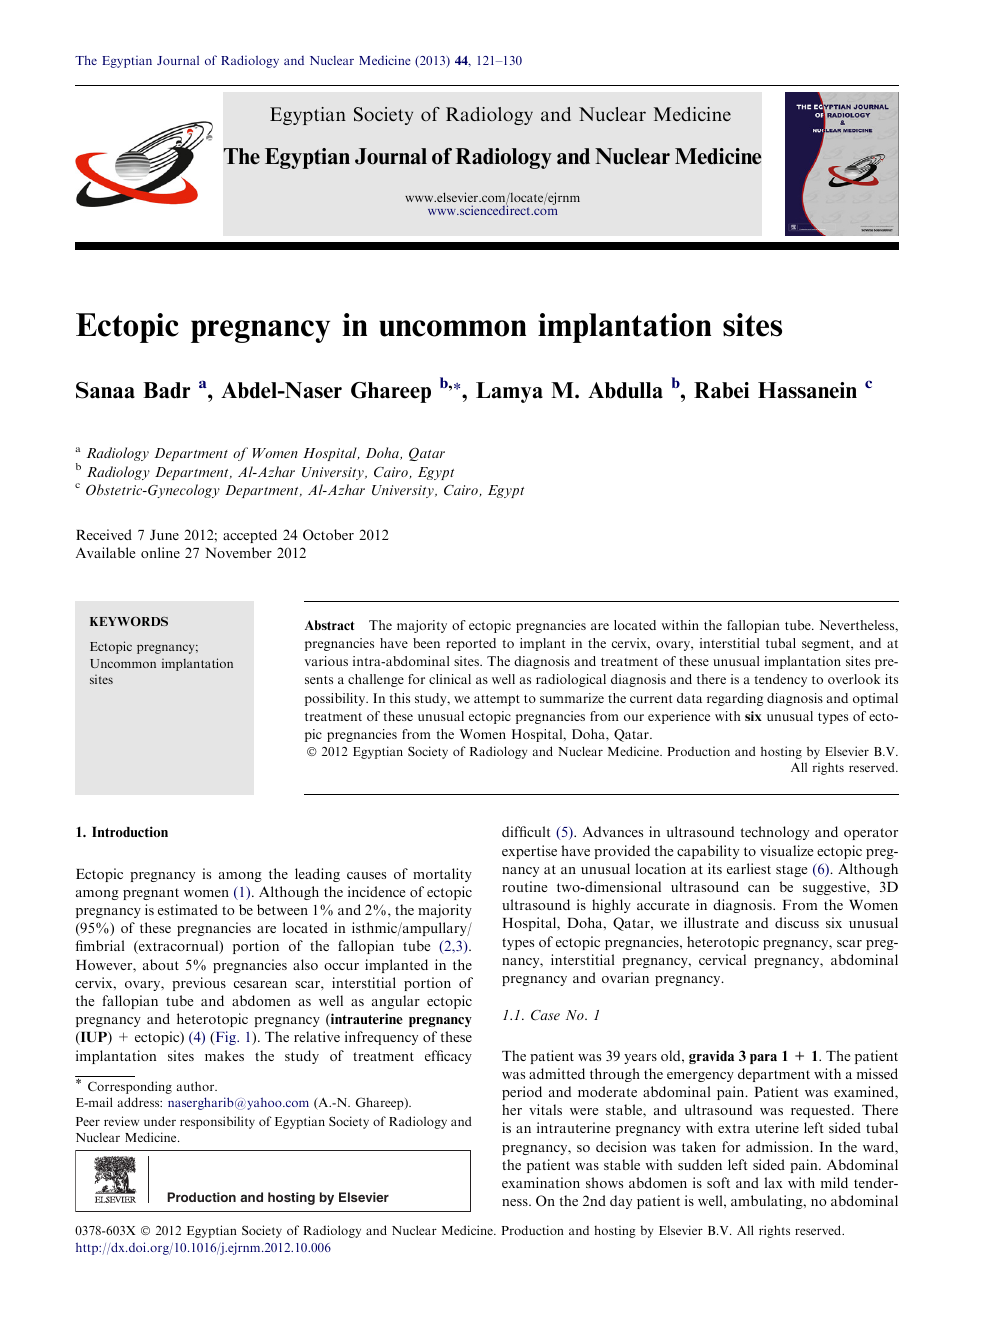 Ectopic pregnancy in uncommon implantation sites – topic of